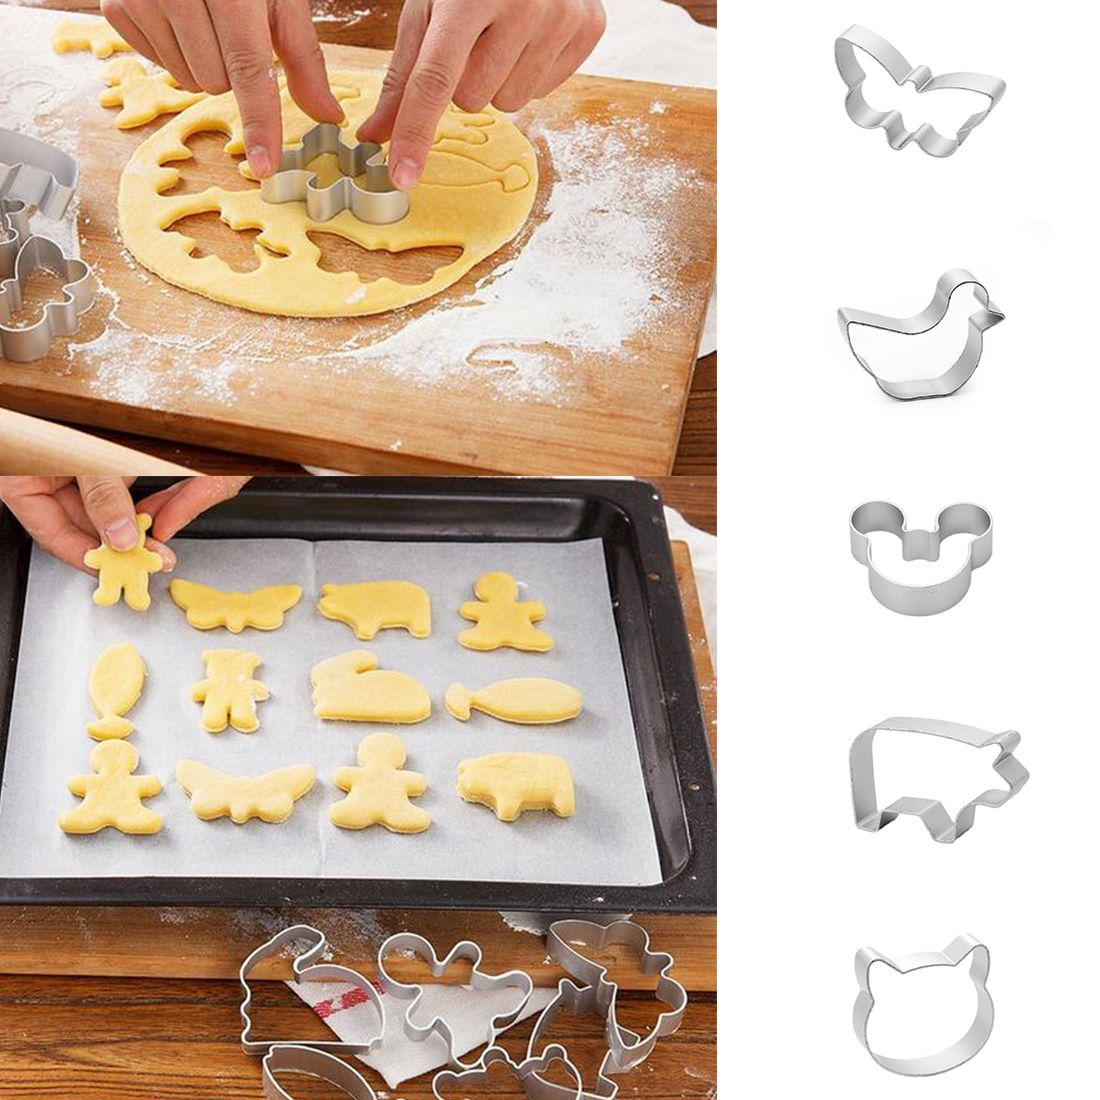 Beatiful 1Pcs/set  DIY Cake cutting Aluminium Alloy Gingerbread Men Shaped Holiday Biscuit Mold Kitchen cake Decorating Tools